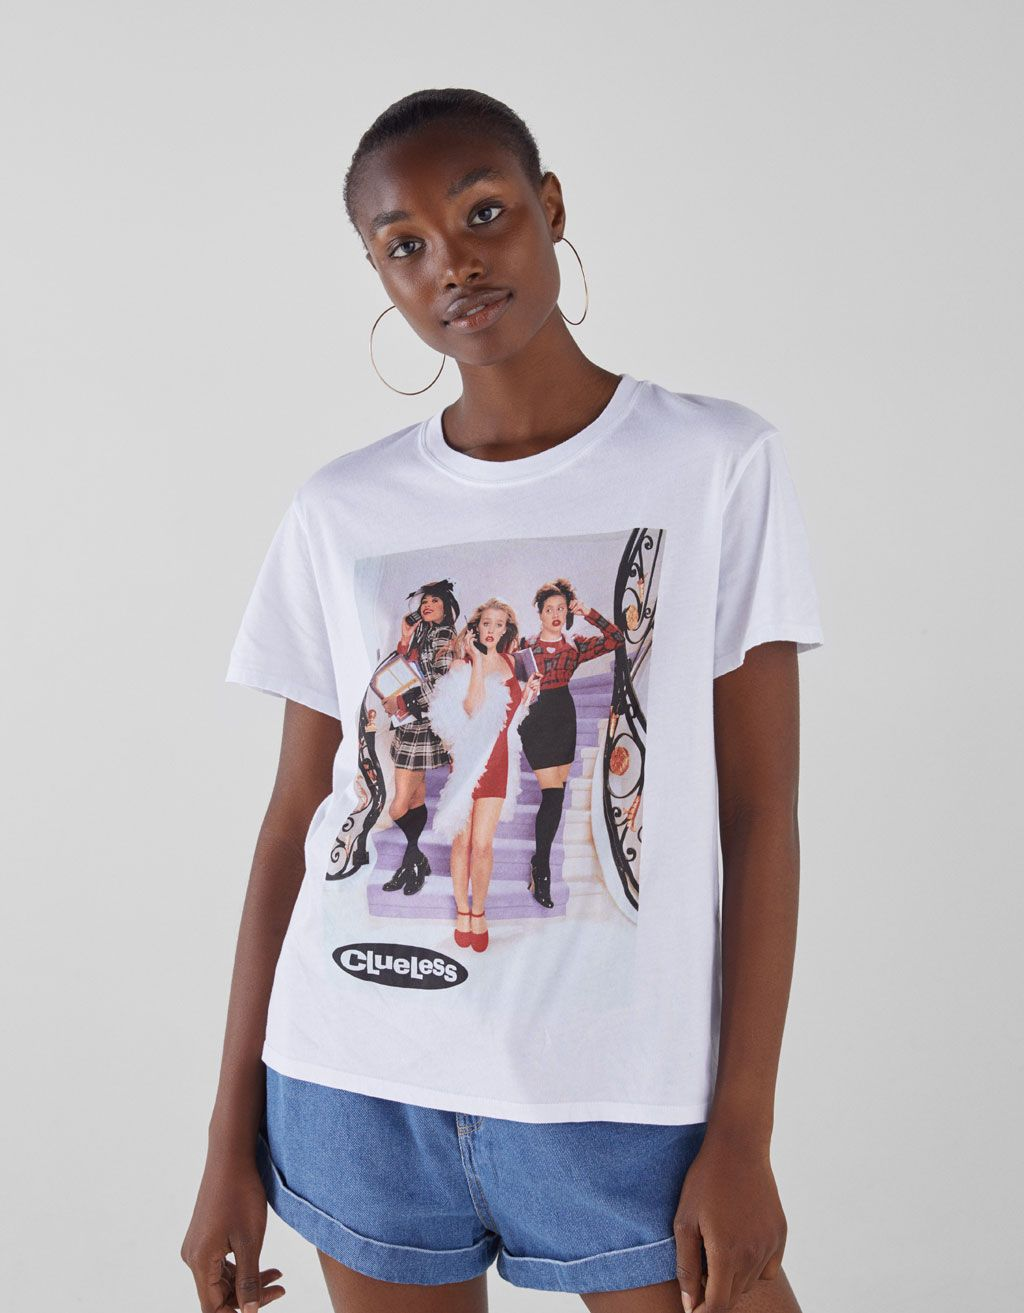 0a83d1e3 Clueless T-shirt in 2019 | Fashion is the new Black | Shirts ...